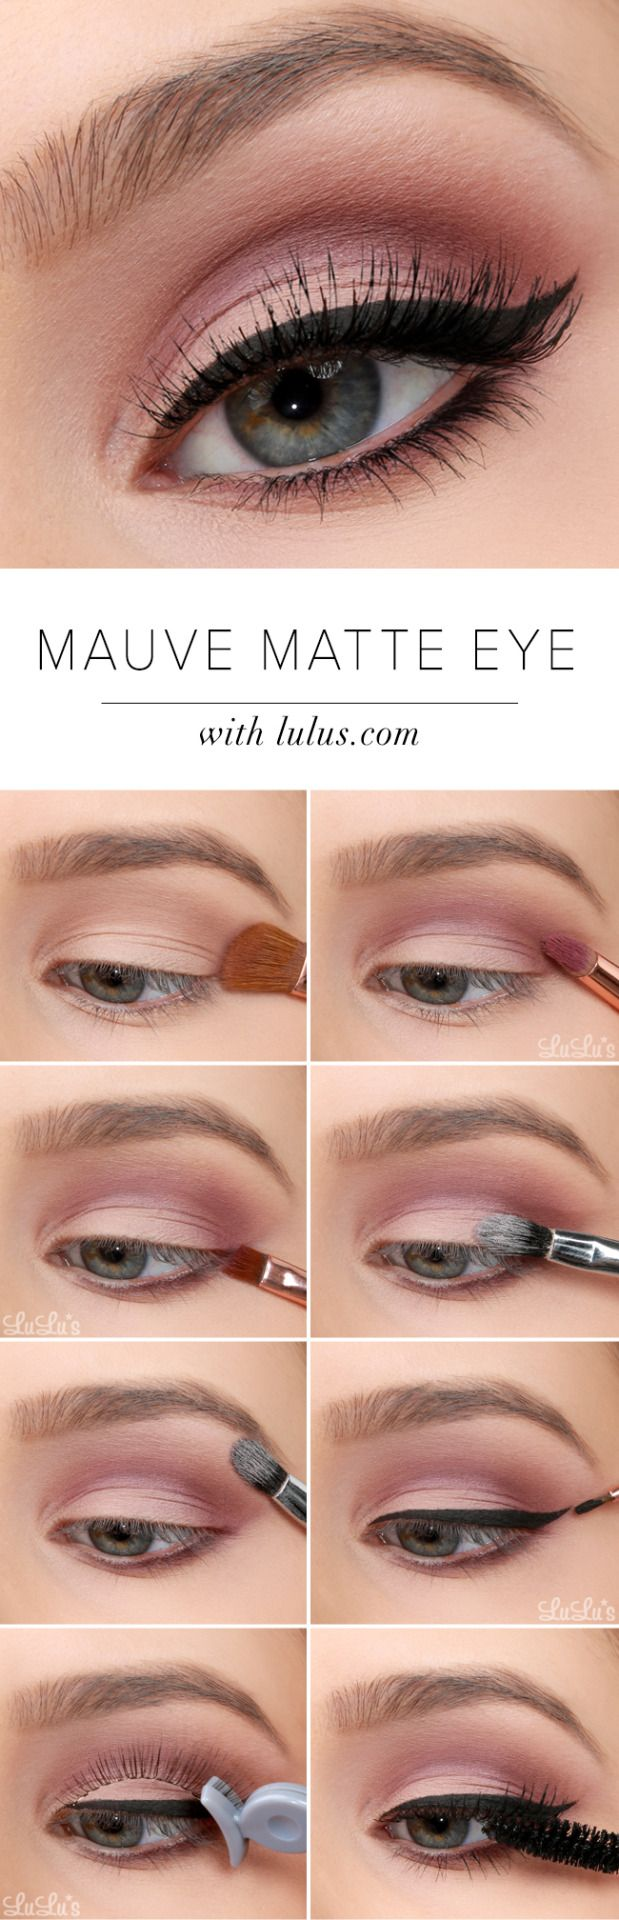 How-To: Mauve Matte Eye Tutorial